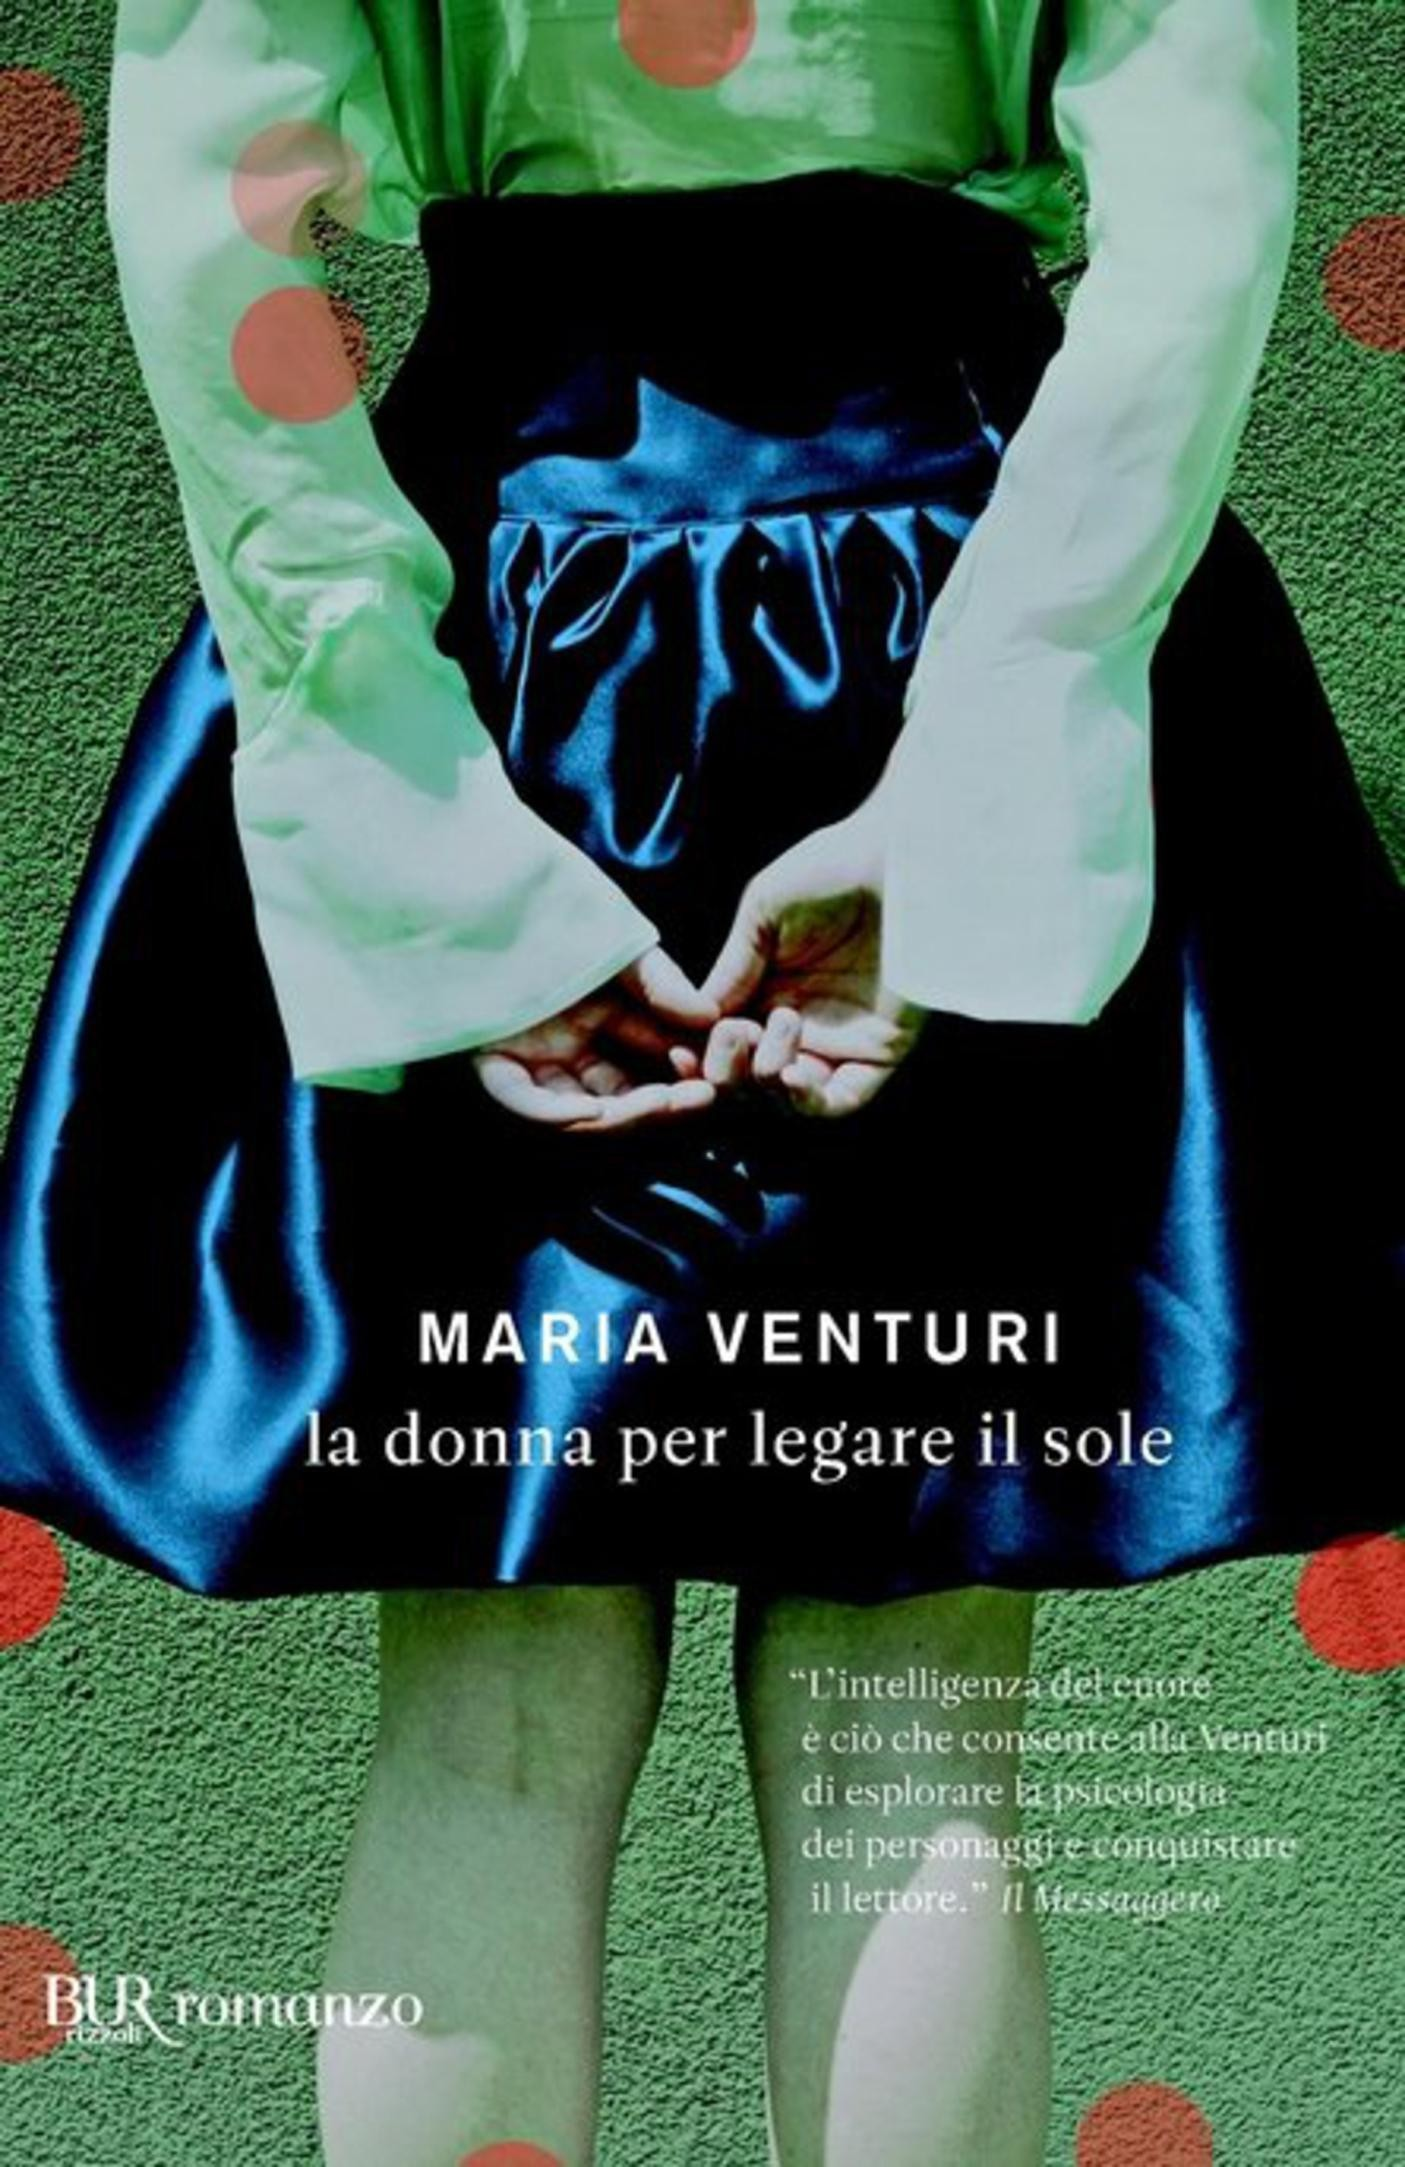 http://alessandria.bookrepublic.it/api/books/9788858627228/cover